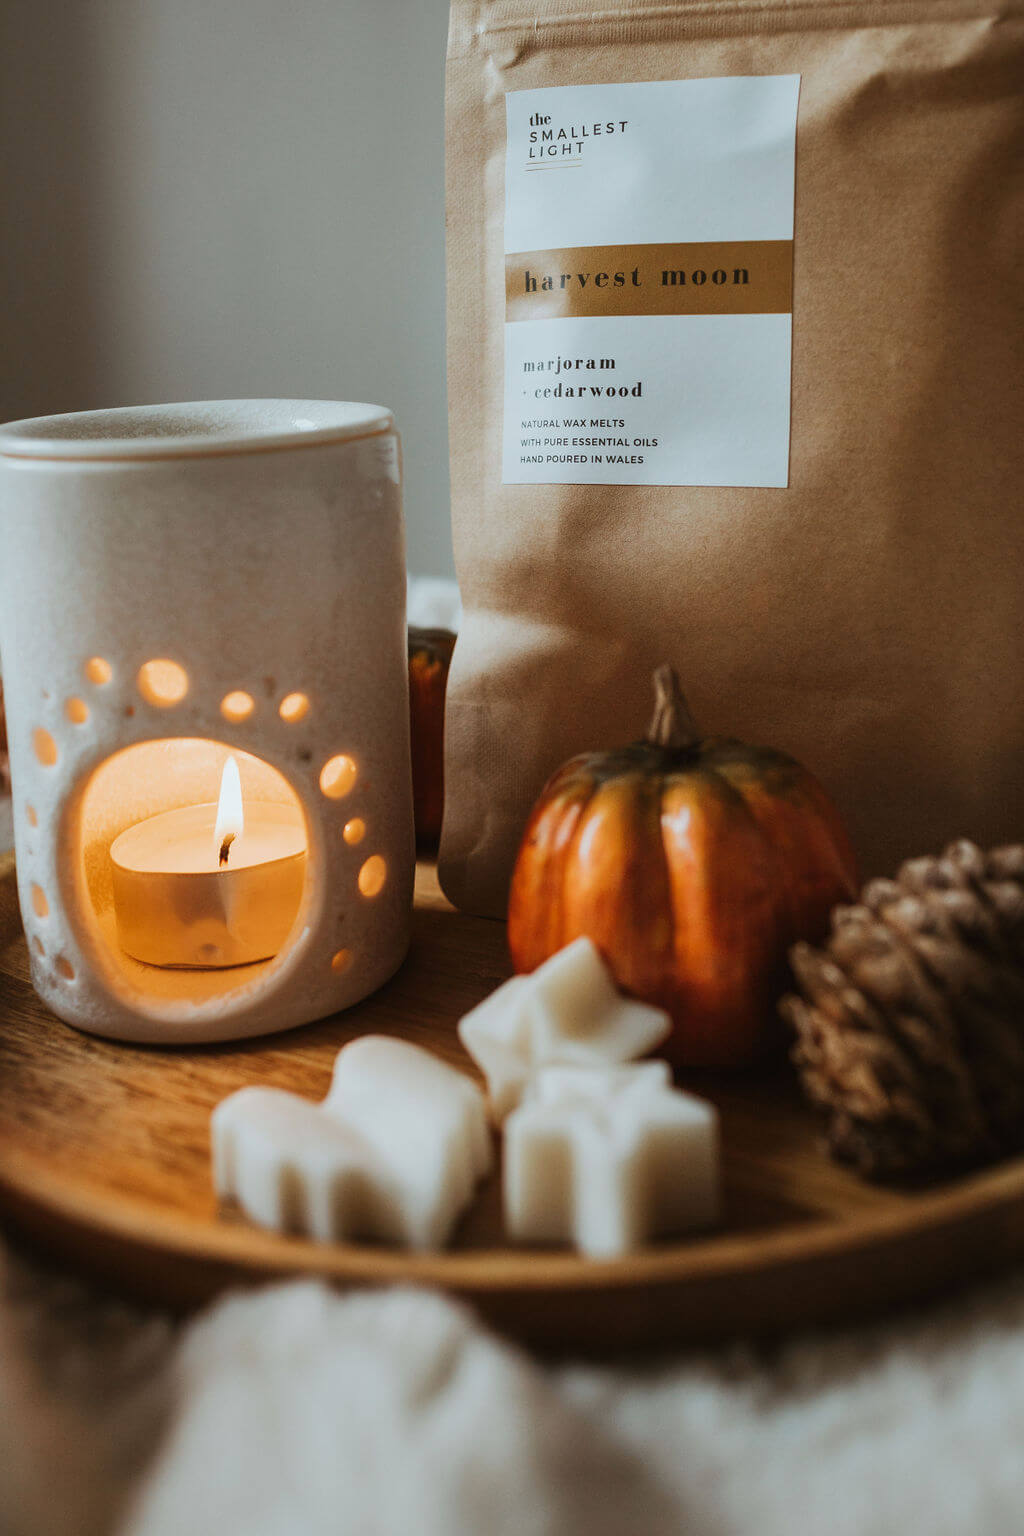 Autumn Natural Wax Melts from The Smallest Light